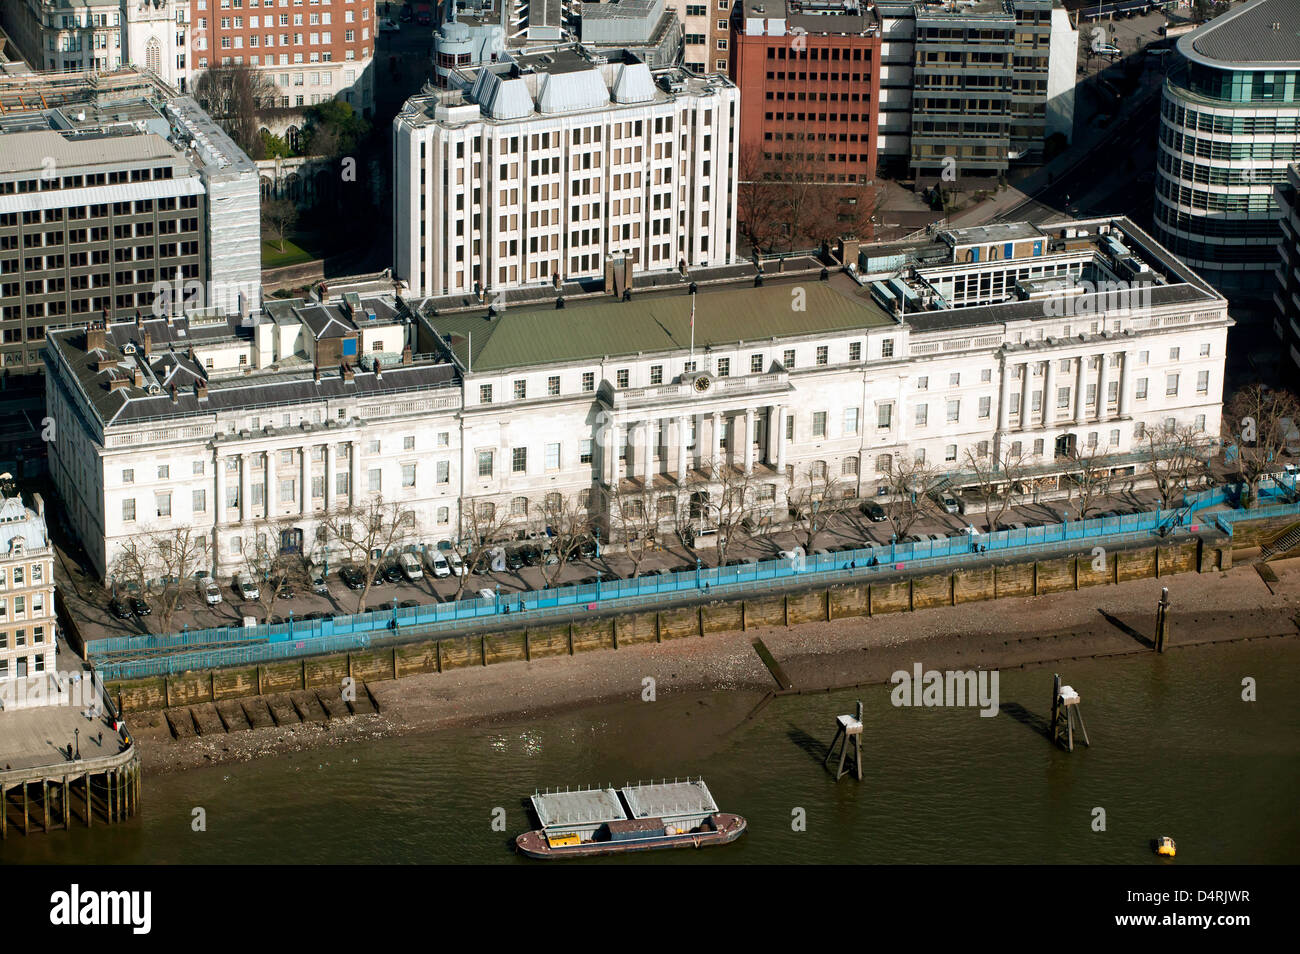 Arial view of the Custom House, City of London - Stock Image